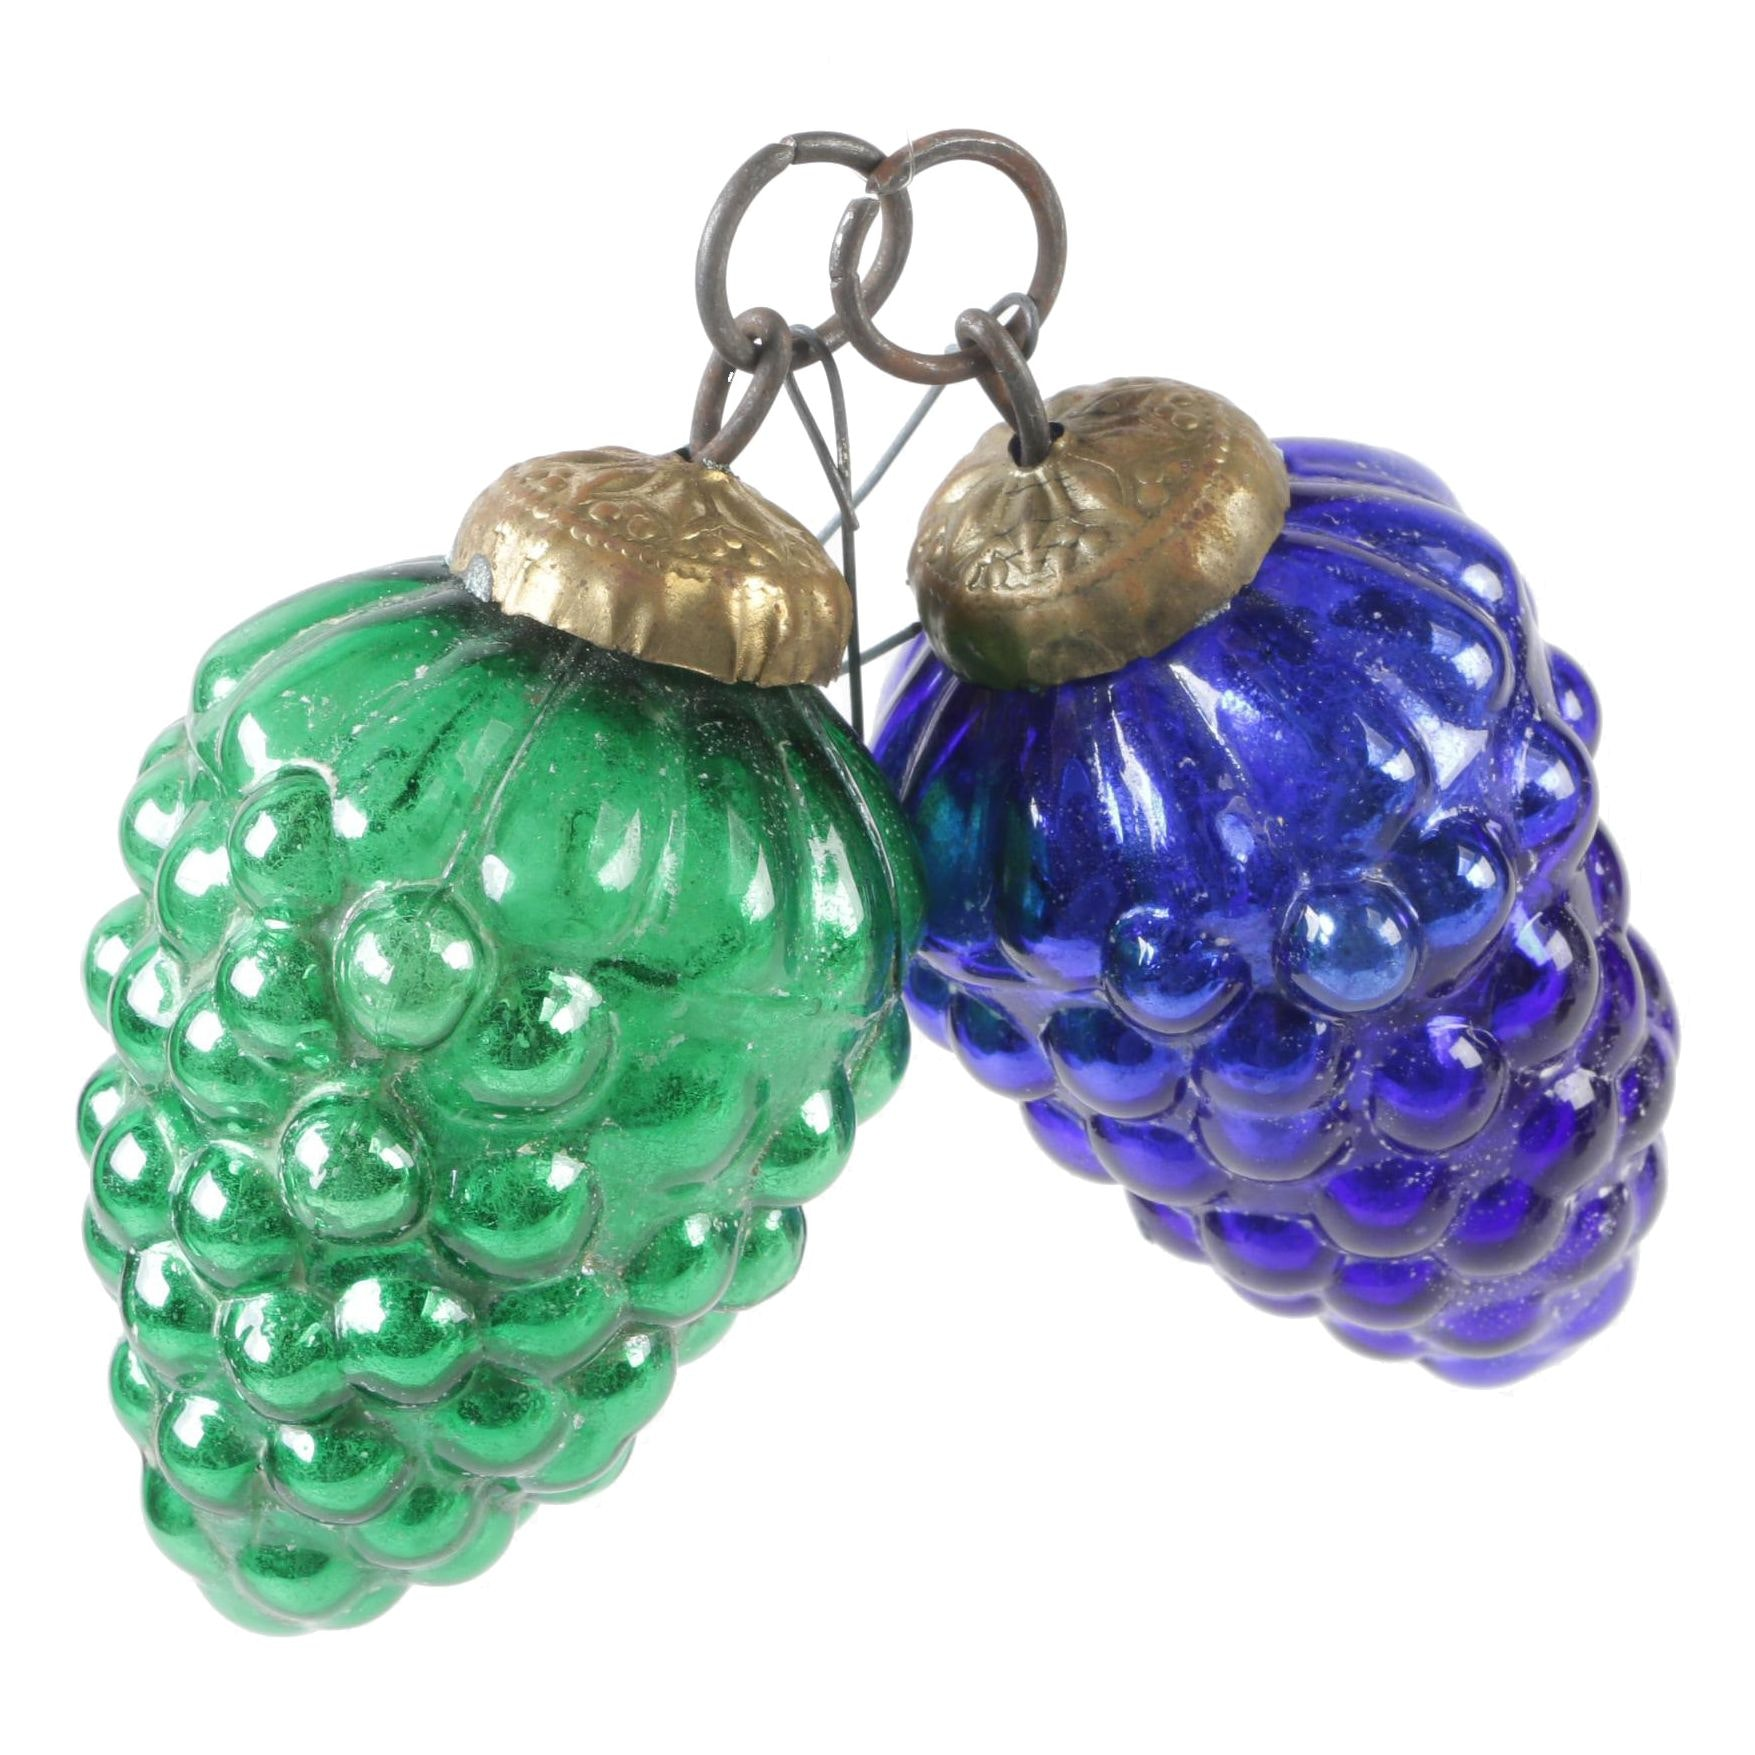 Pair of German Pressed Colored Glass Grape Cluster Kugel Ornaments, Late 19th C.